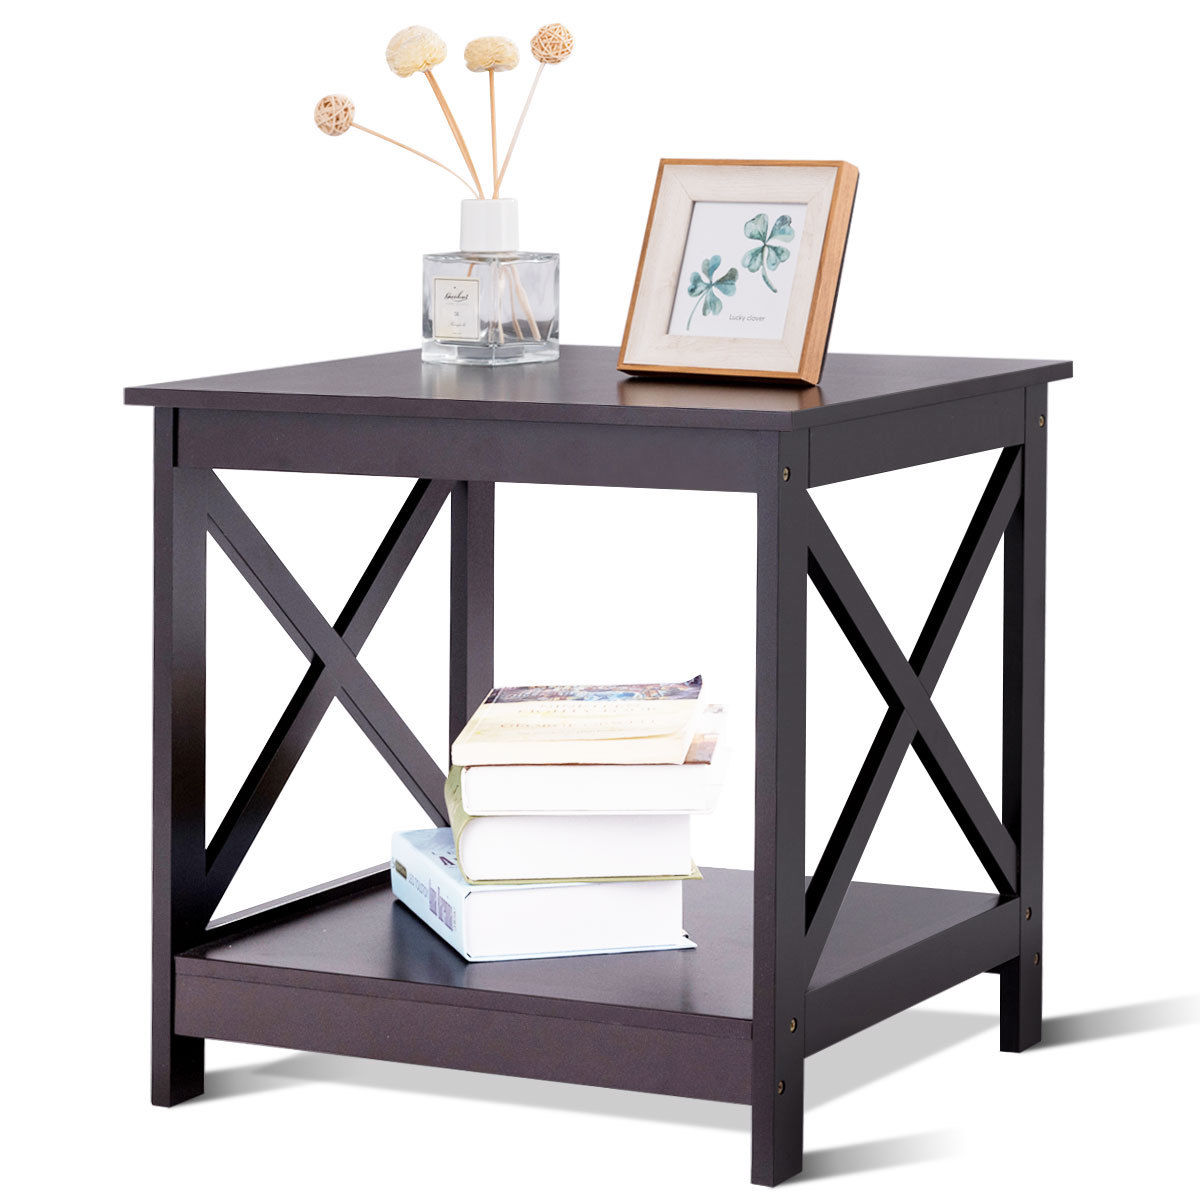 Costway End Table X Design Display Shelves Accent Sofa